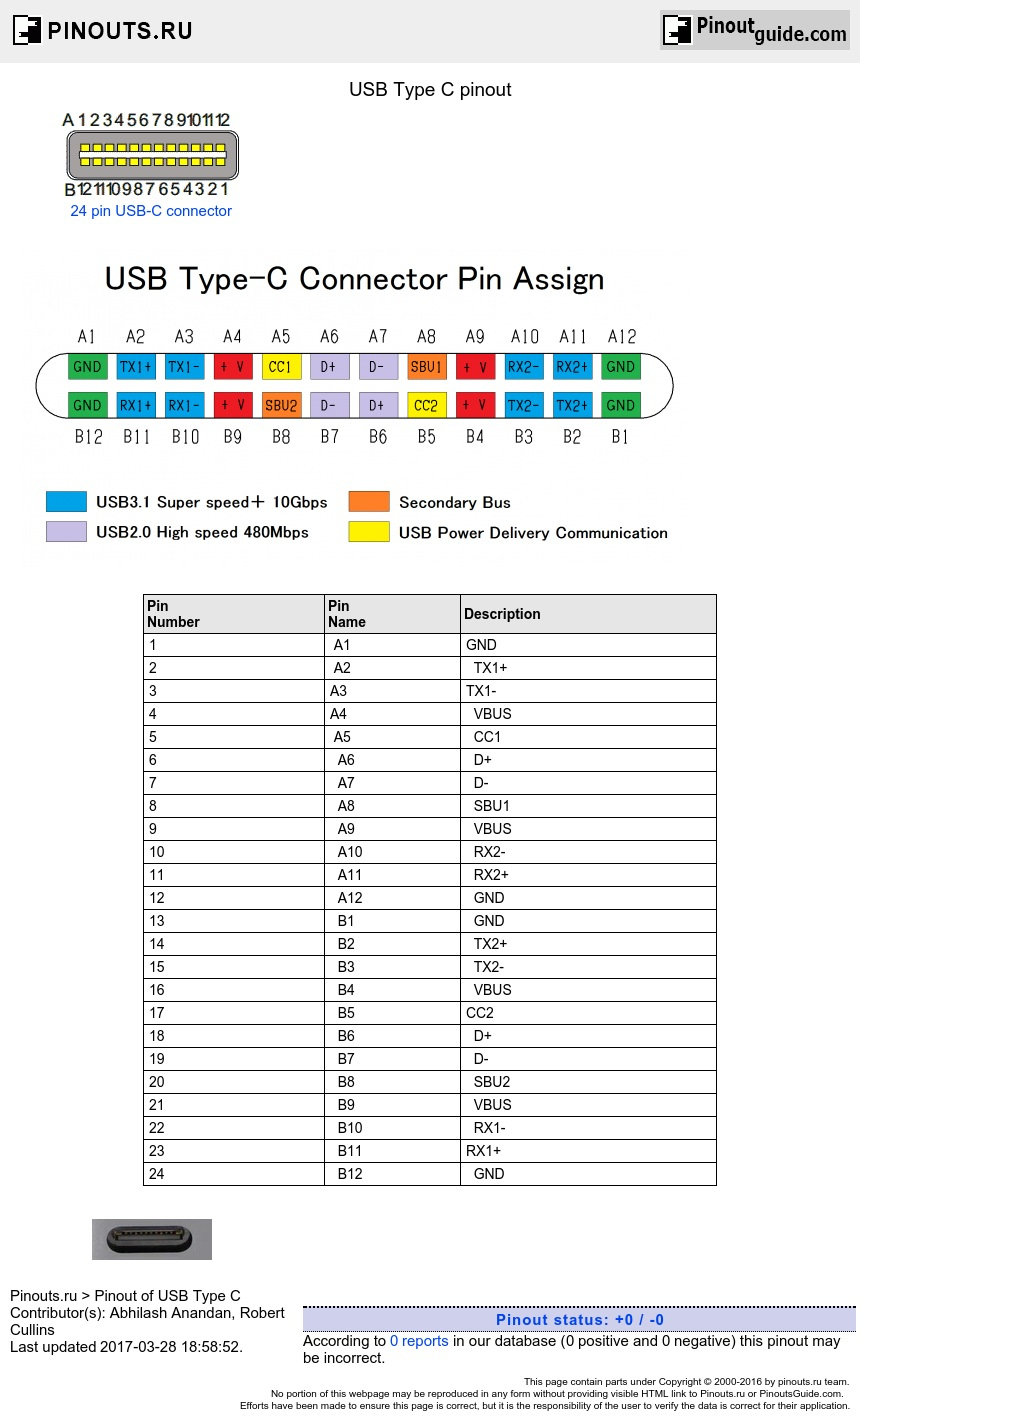 Usb Type C Pinout Diagram @ Pinoutguide - Usb C Wiring Diagram | Usb - Usb C To Usb A Wiring Diagram